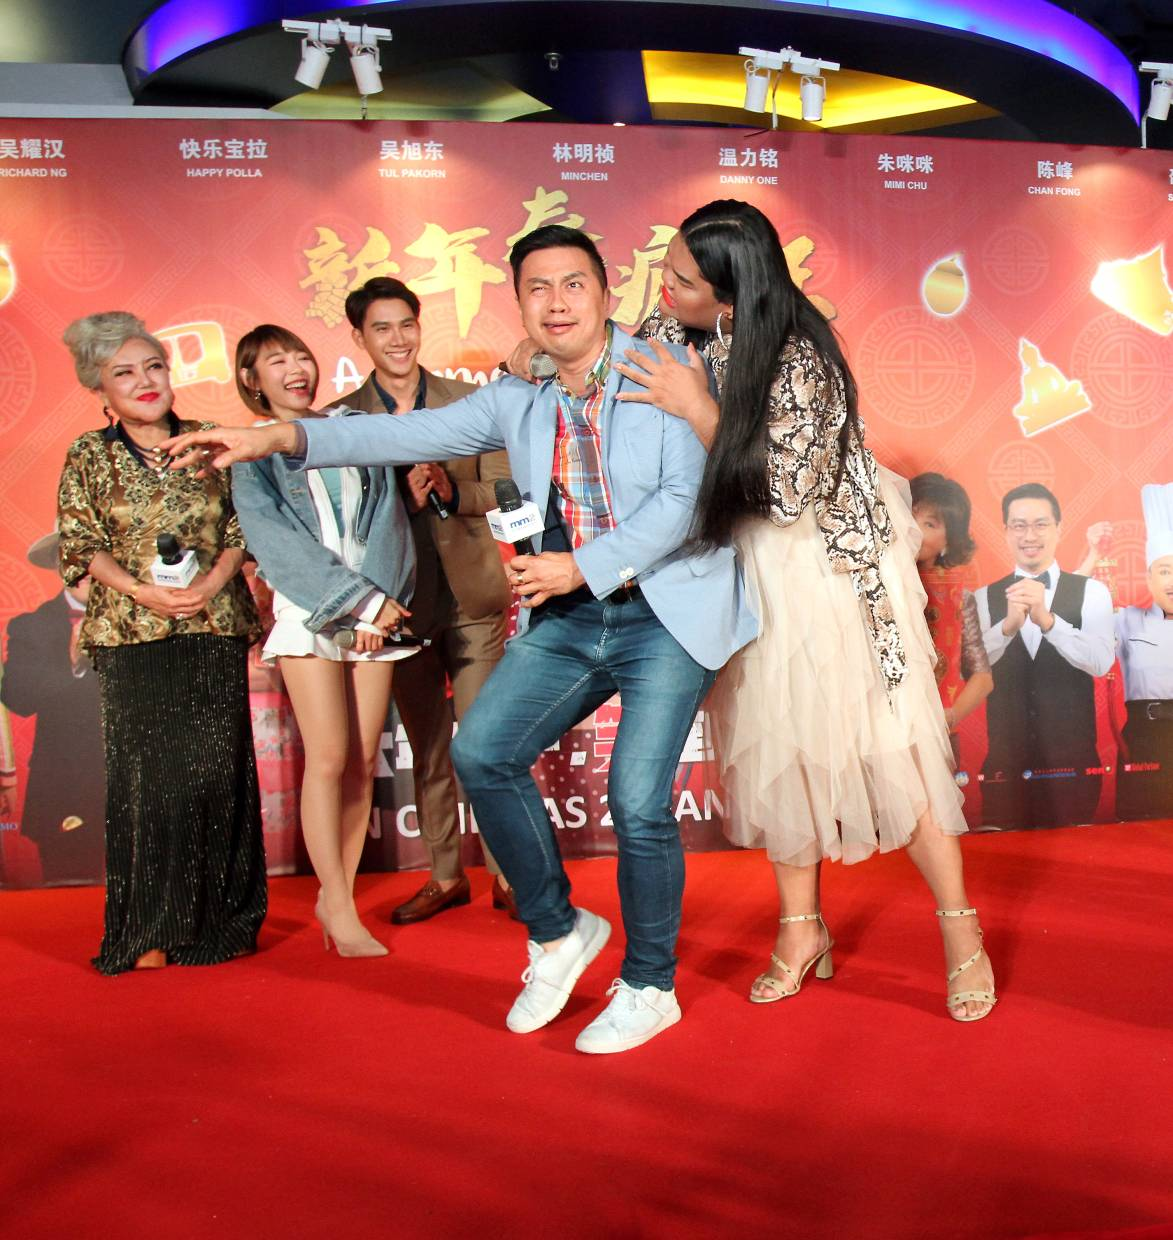 The cast of The Moment Of Happiness (from left) Shaw, Lim, Pakorn, Chan Fong and Happy Polla goofing around at the press conference for the movie. - The Star/Muhamad Shahril Rosli